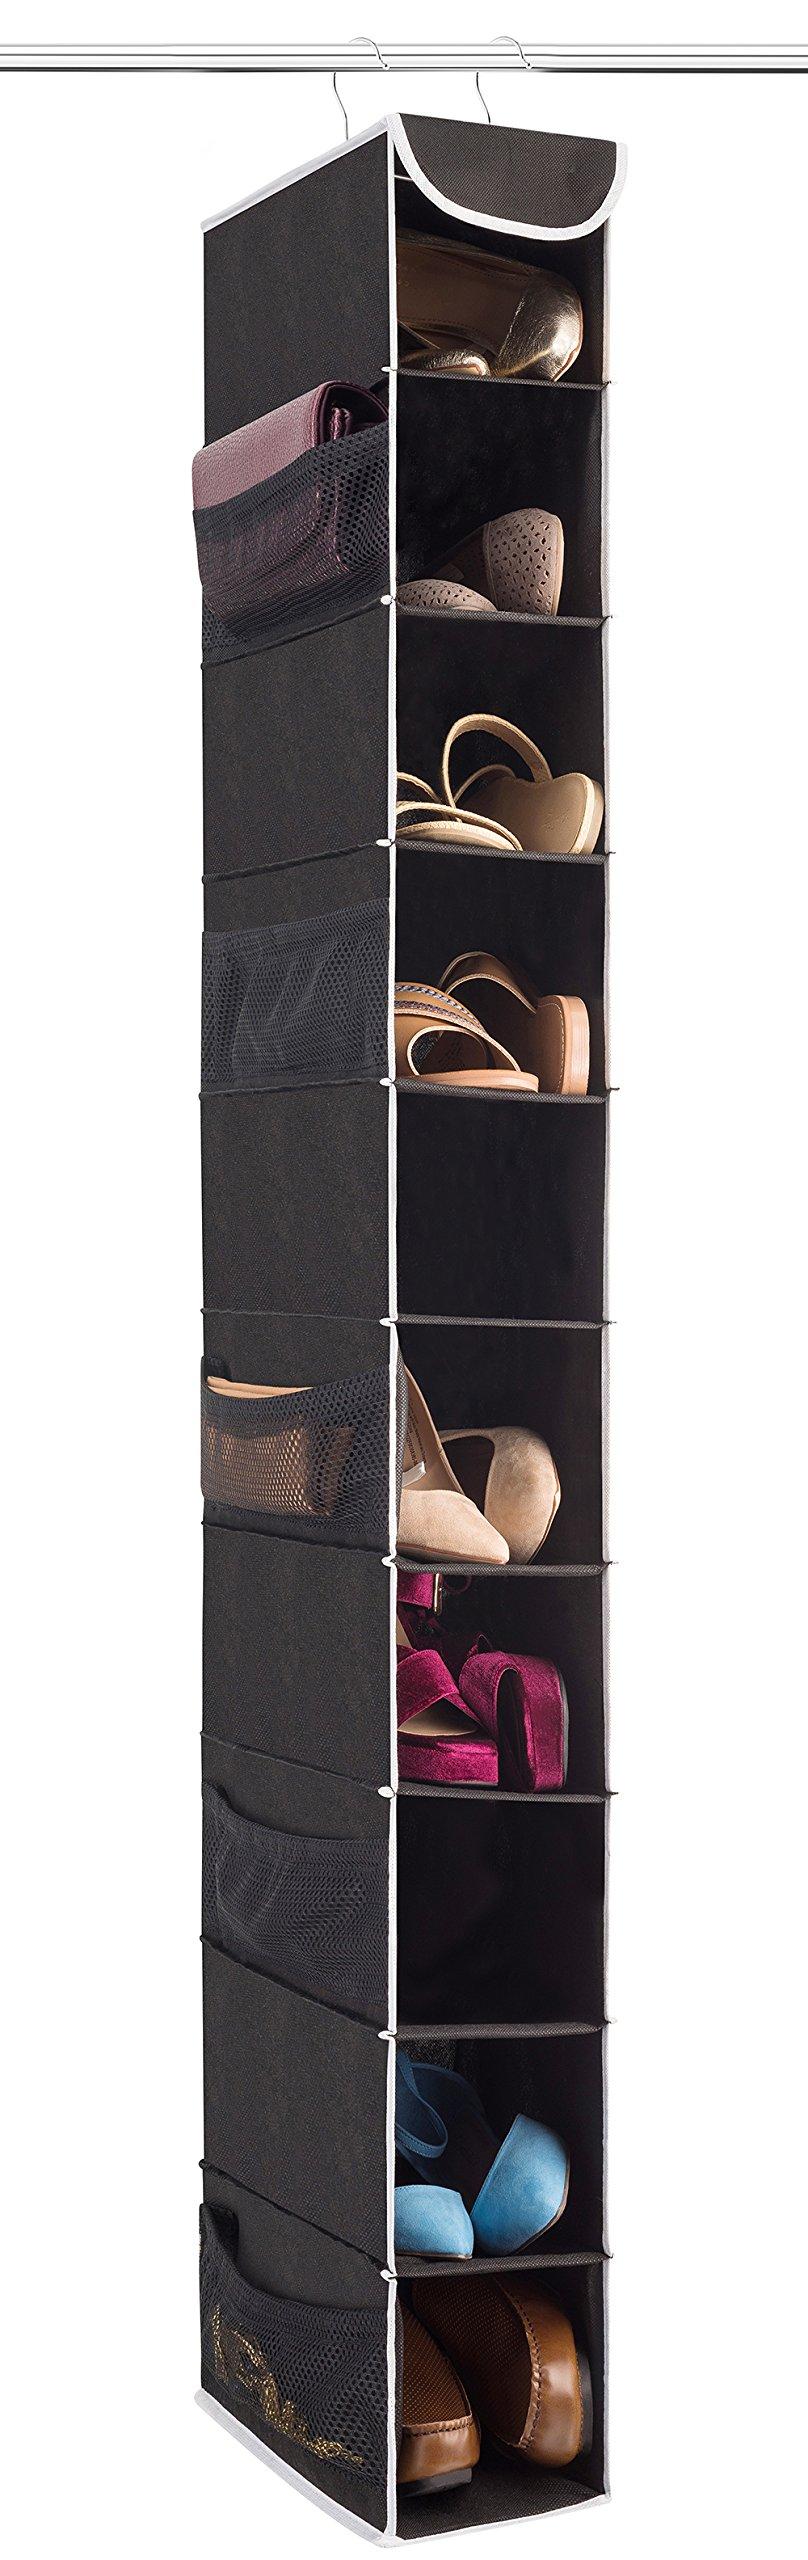 Attrayant ZOBER 10 Shelf Hanging Shoe Organizer, Shoe Holder For Closet   10 Mesh  Pockets For Accessories   Breathable Polypropylene, Black   5 ½u201d X 10 ½u201d X  54u201d